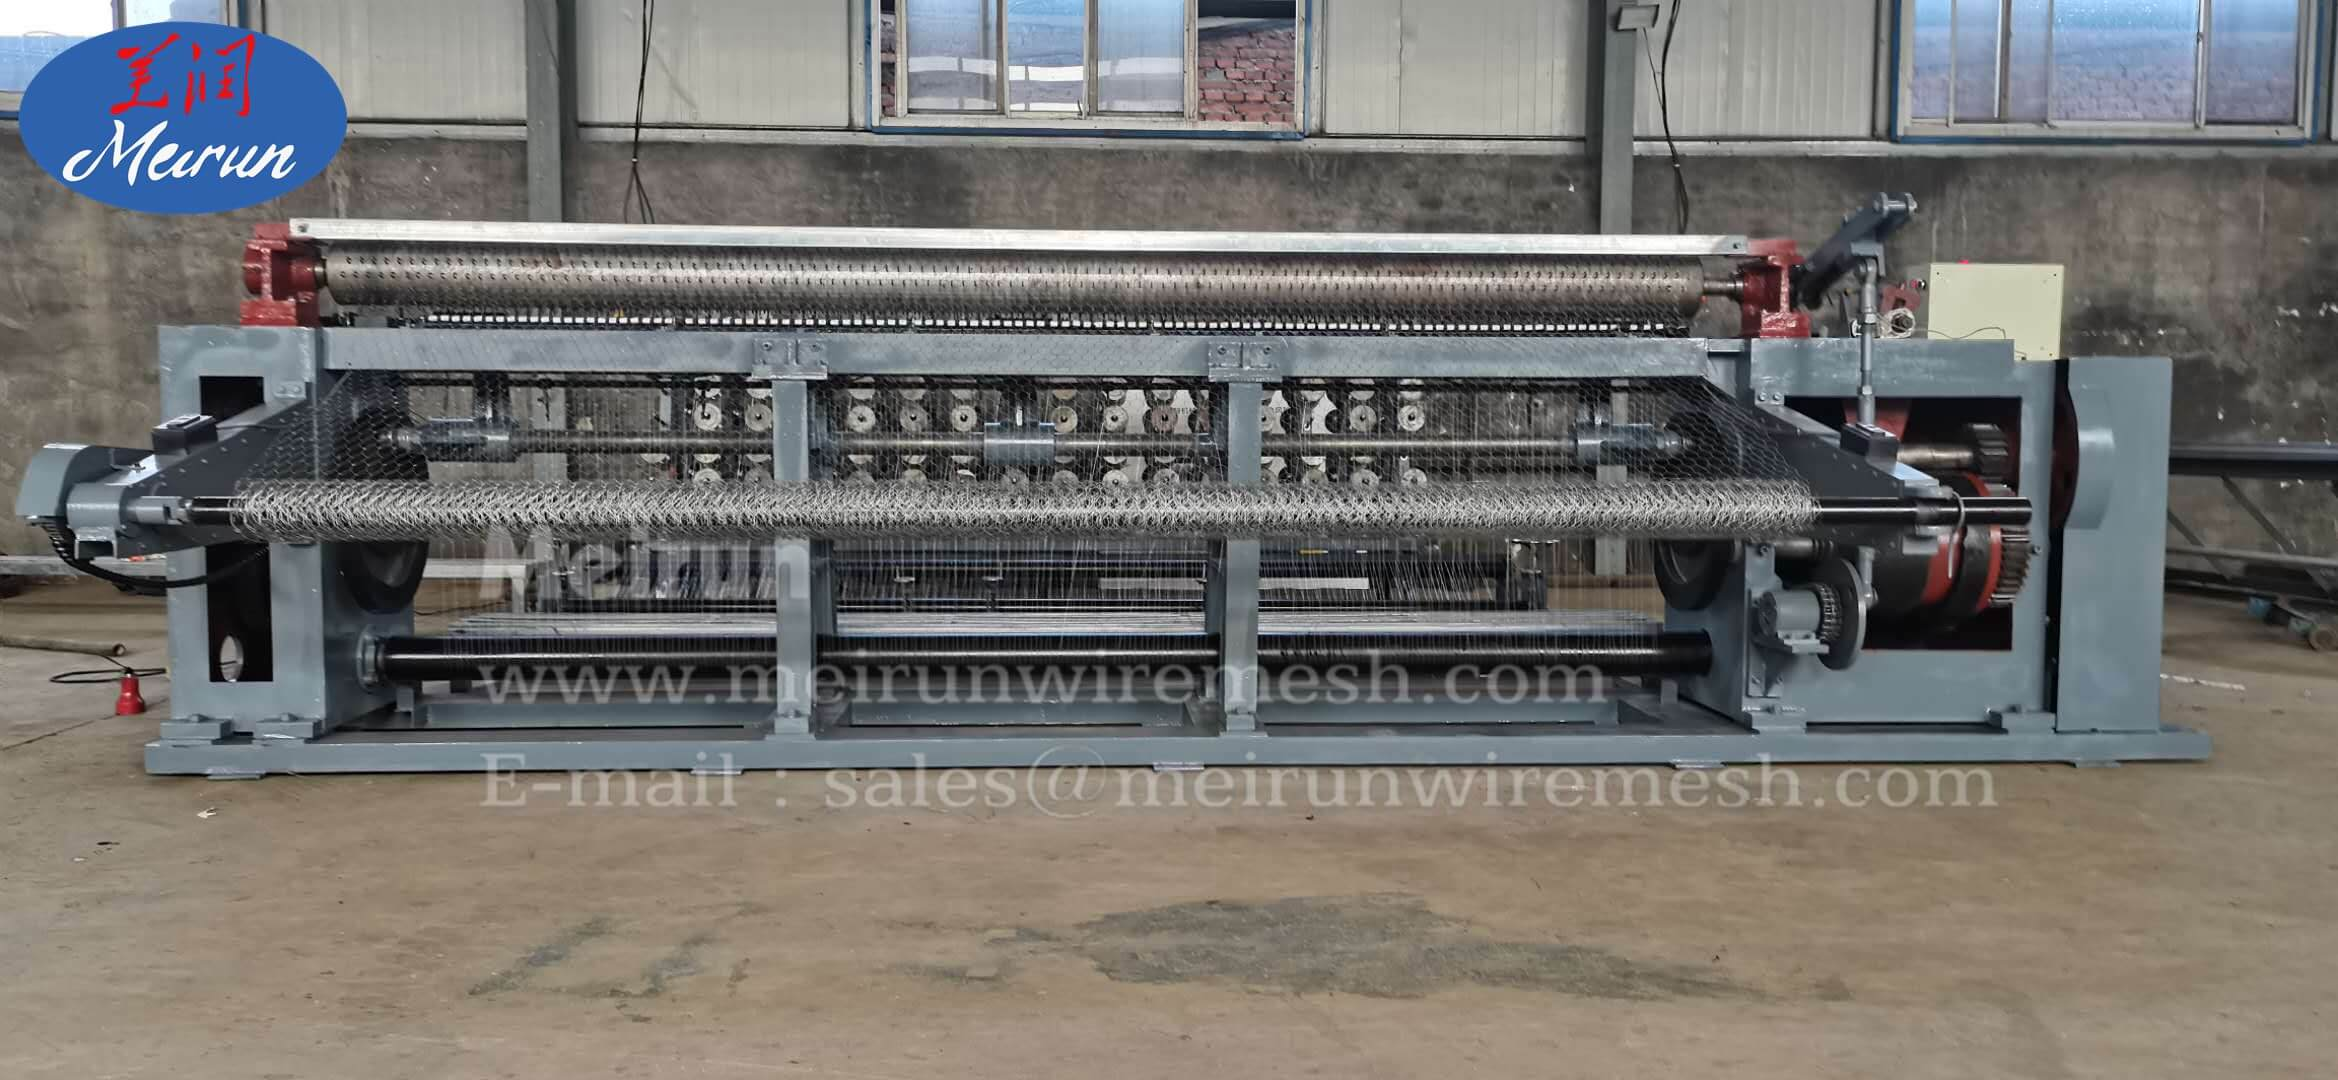 Hexagonal Chicken Wire Mesh Machine